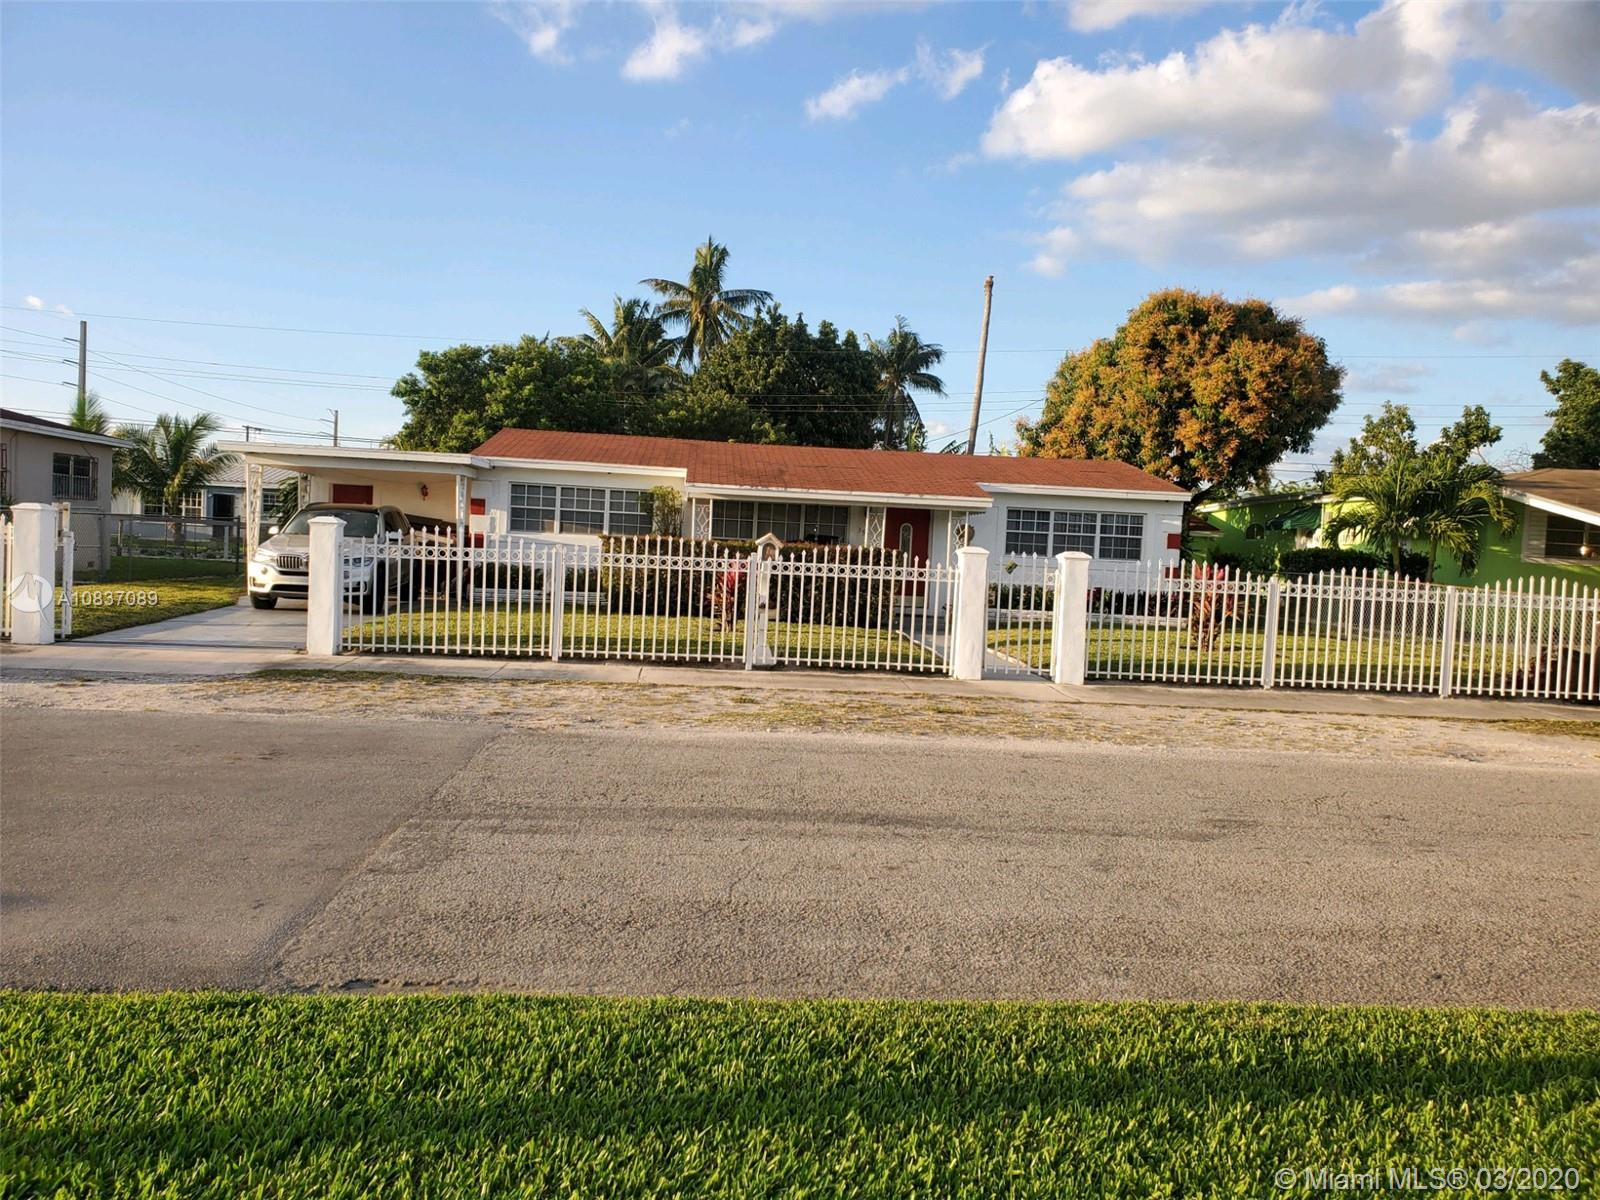 3551 NW 80th Ter, Miami, FL 33147 - Miami, FL real estate listing